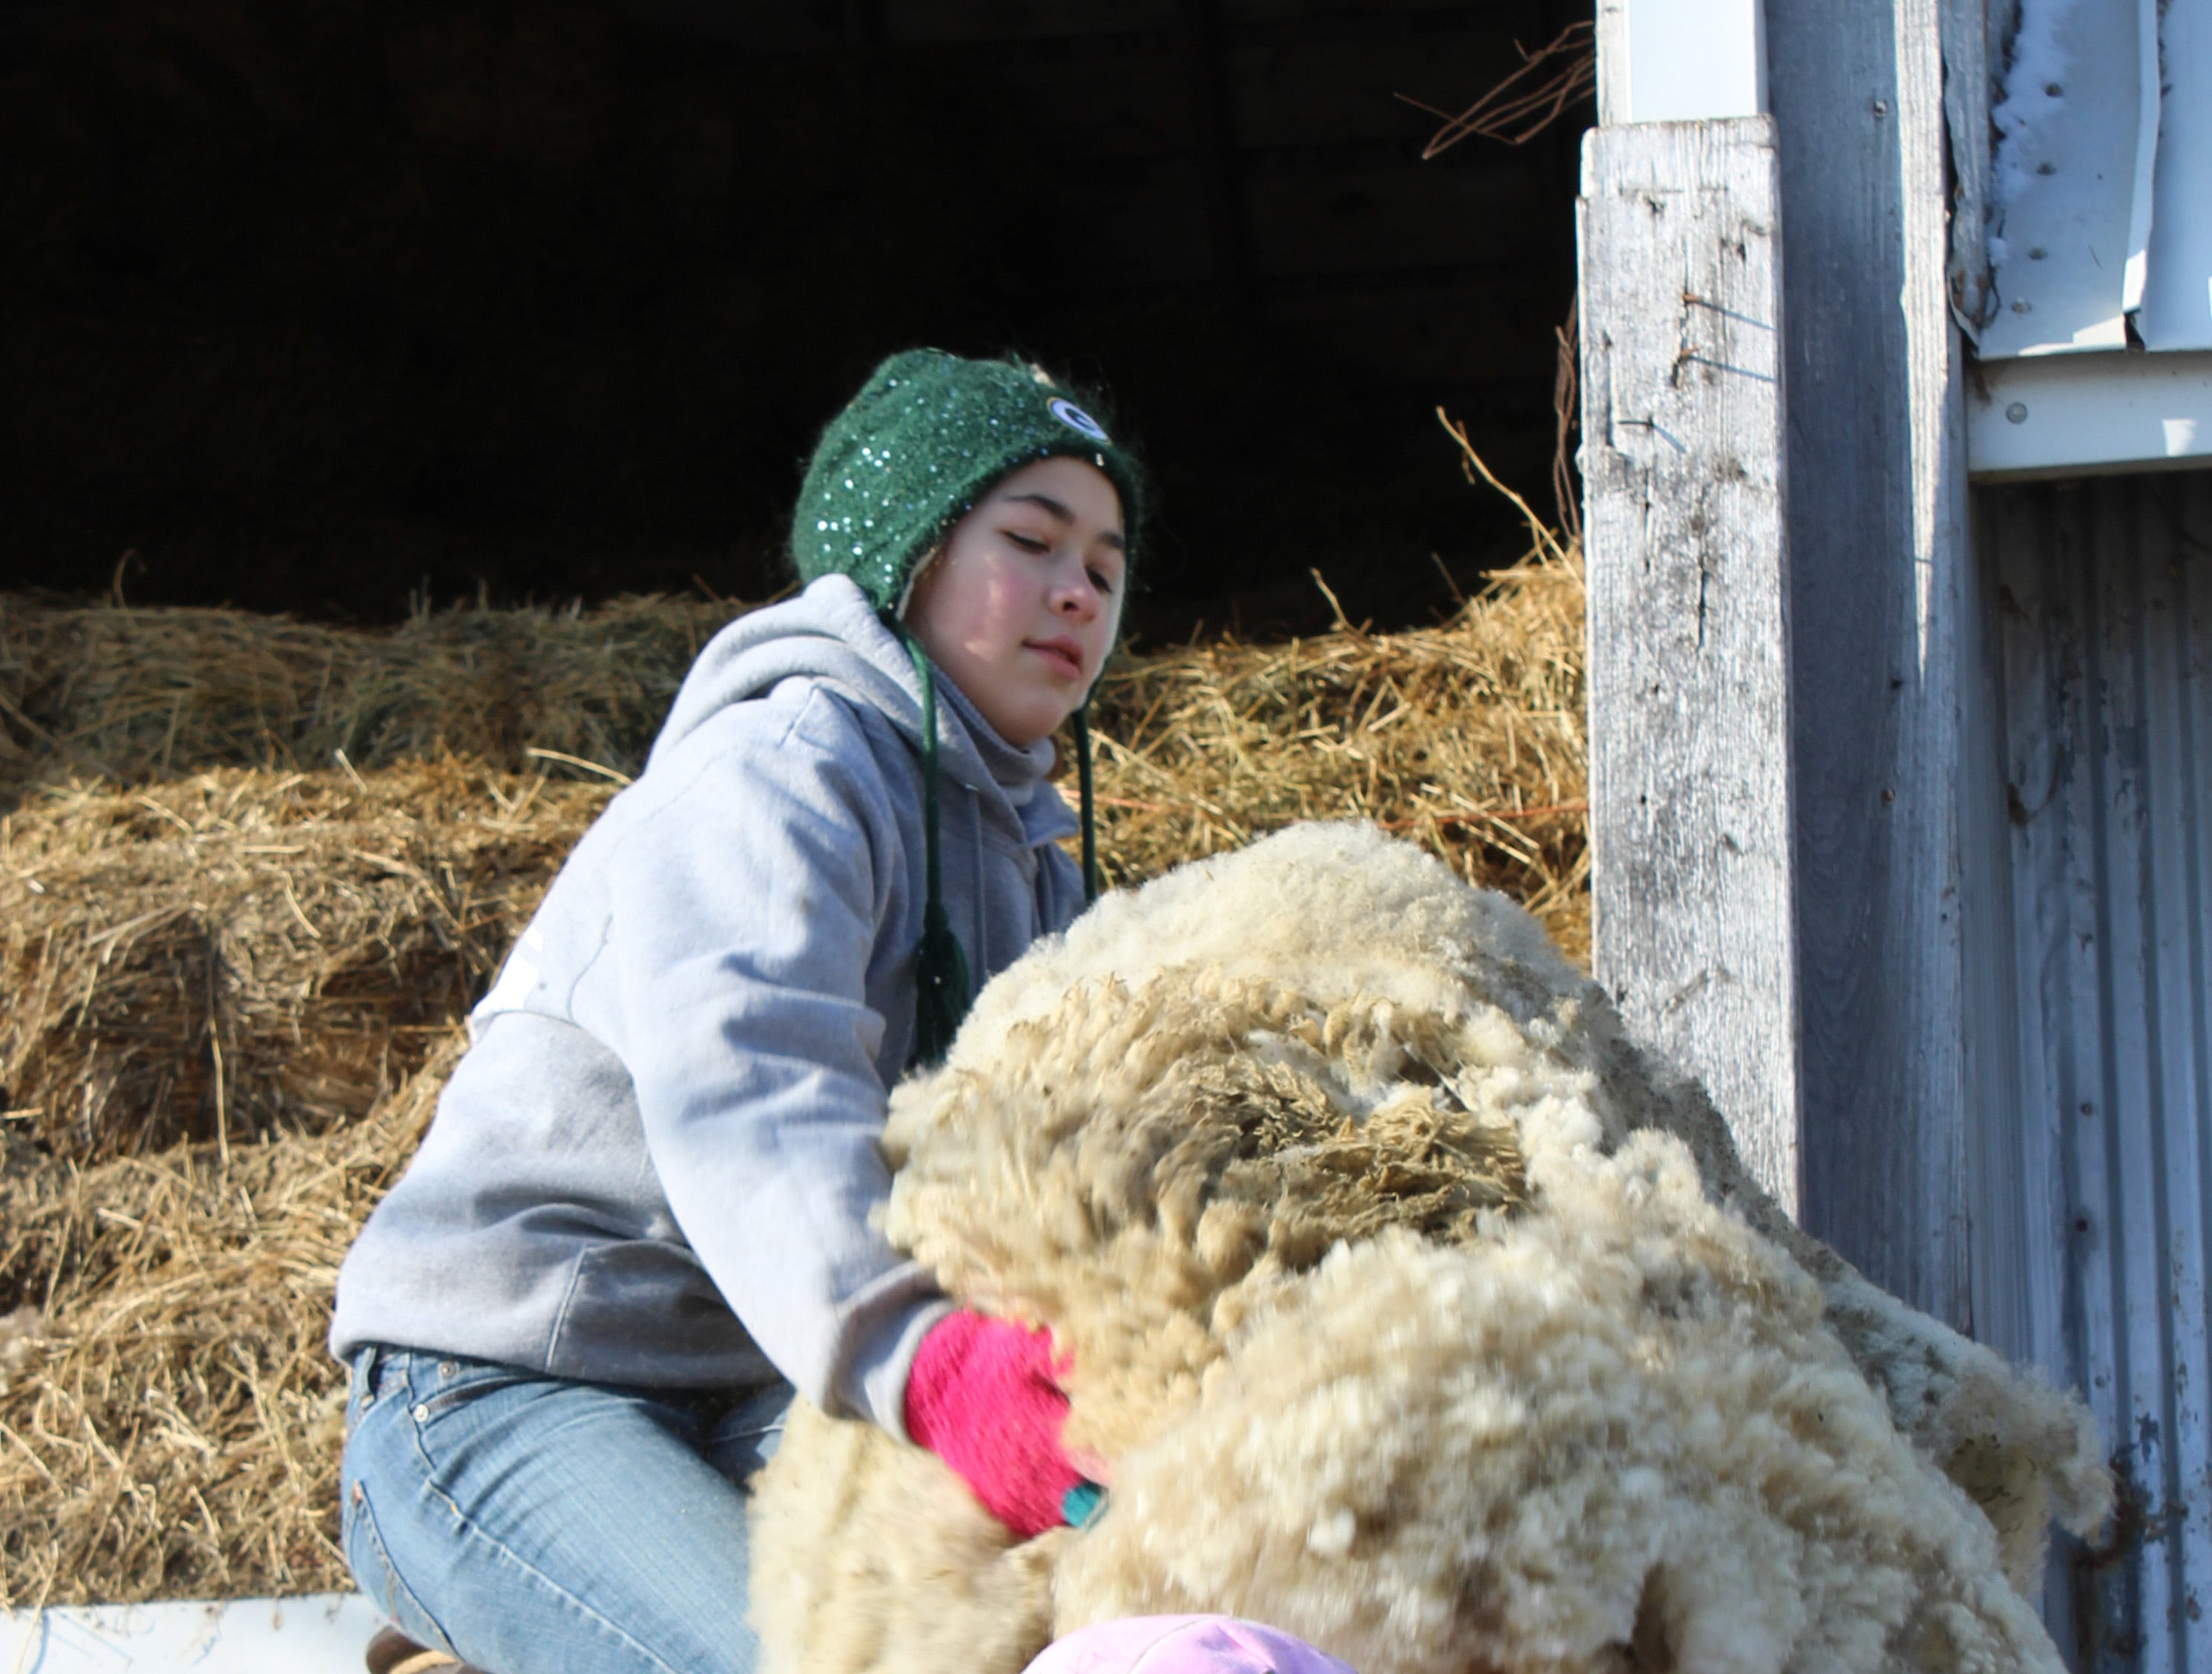 Hailey Boelk (left) grabs a fleece from her cousin, Marissa Kottke, to be placed into a large bulap bag that holds 125-150 lbs of wool.